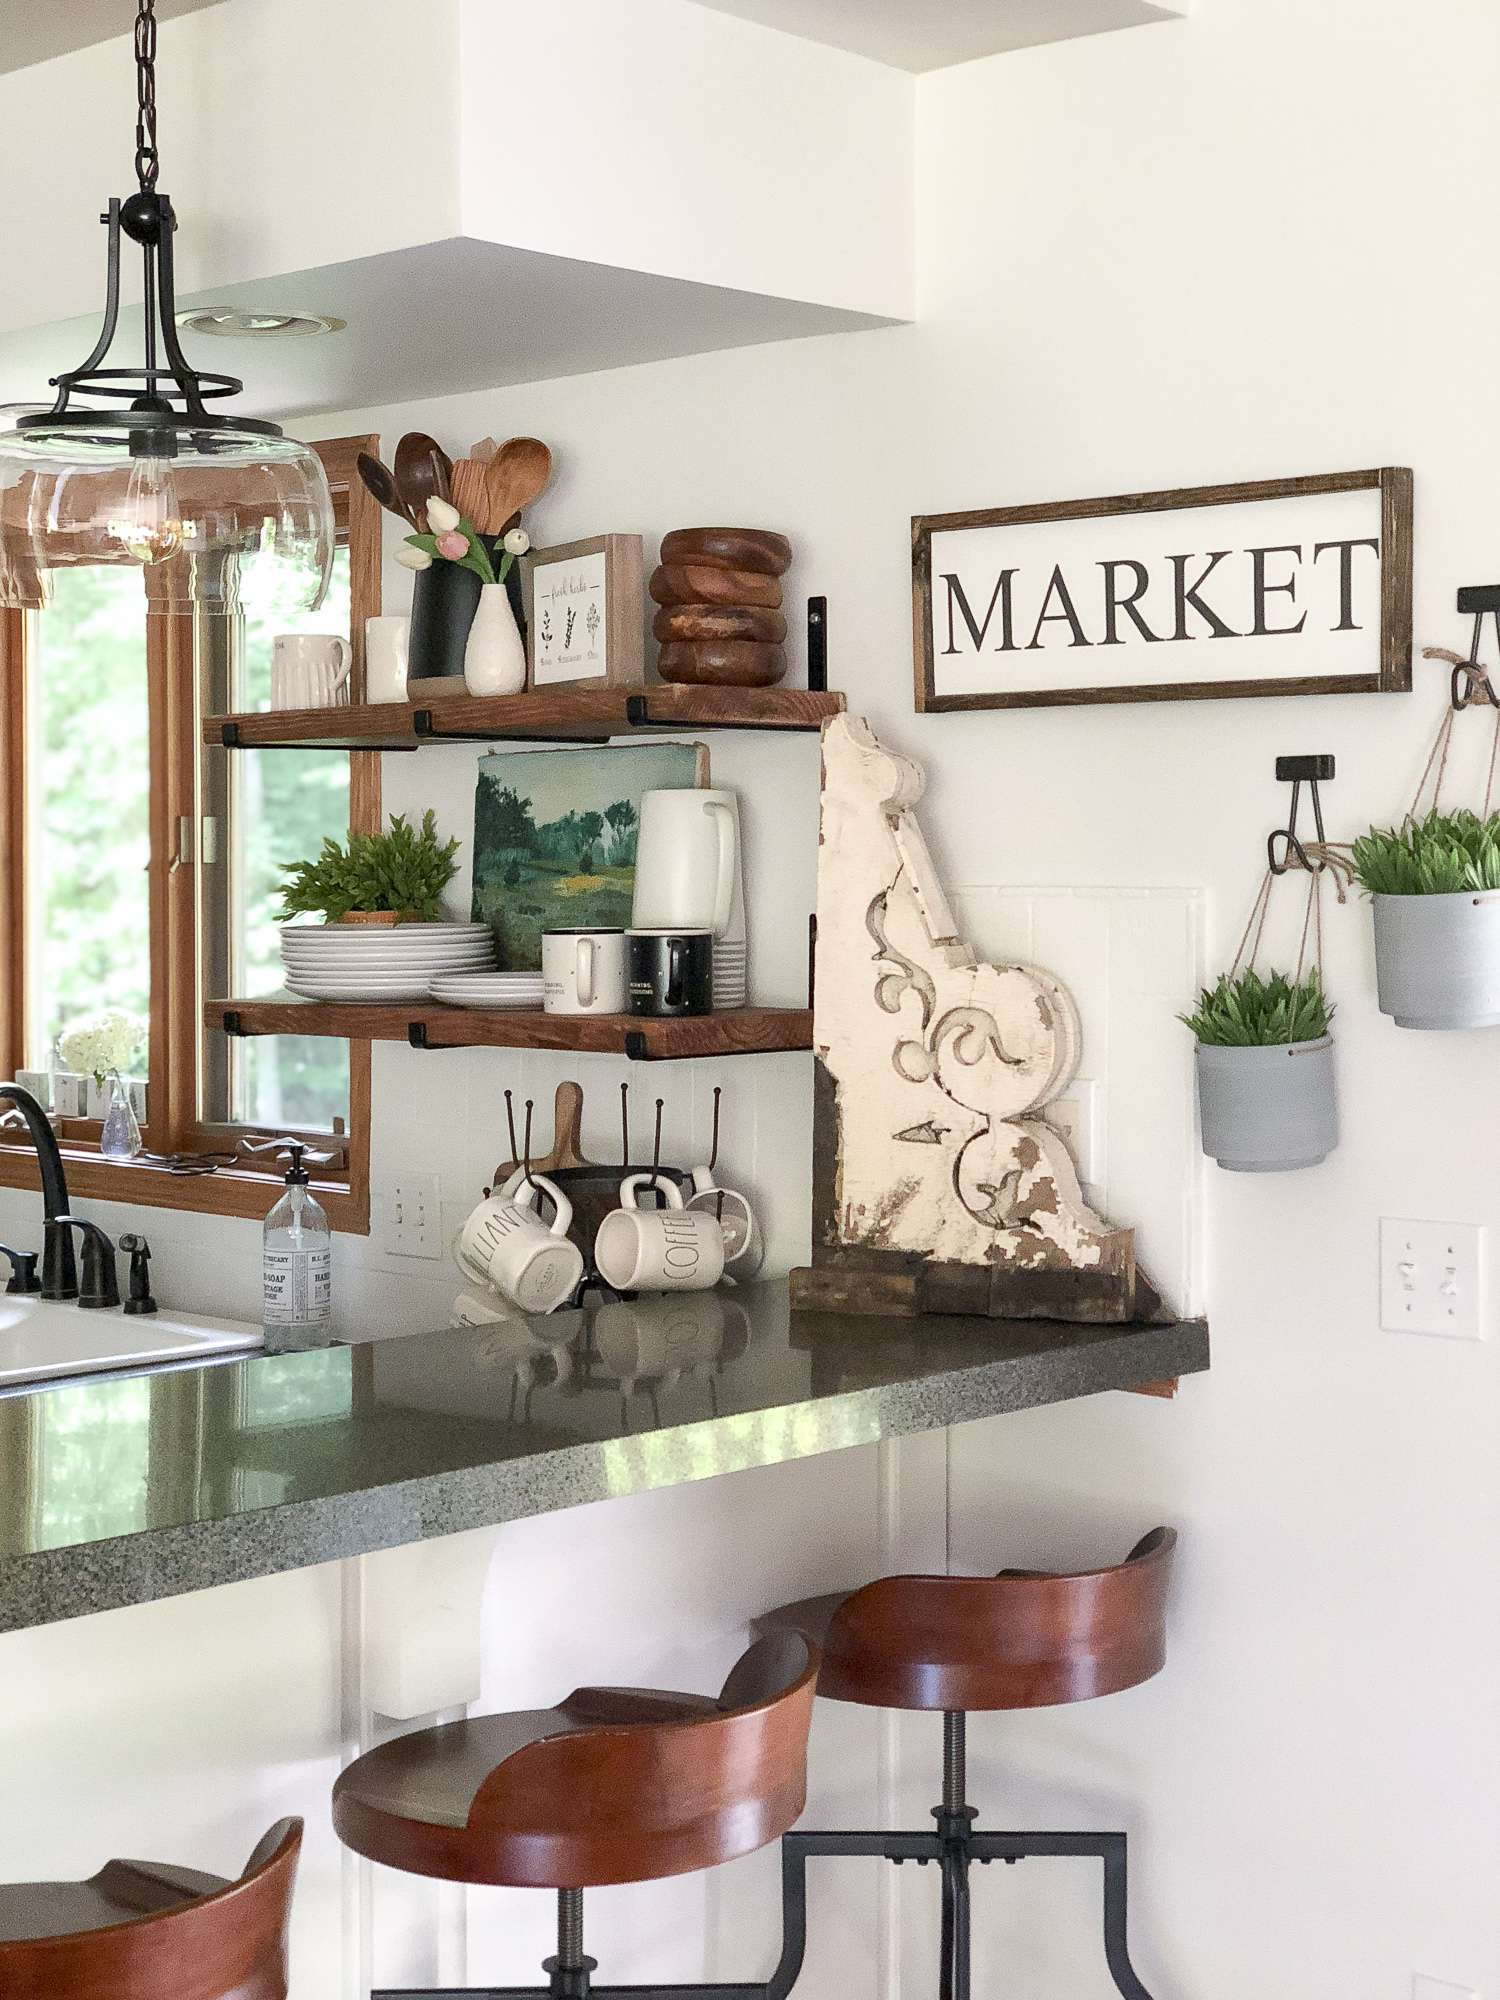 Read this simple step by step DIY open shelving tutorial to learn how to create your own open shelving, on a budget! Free guide included! Read more....